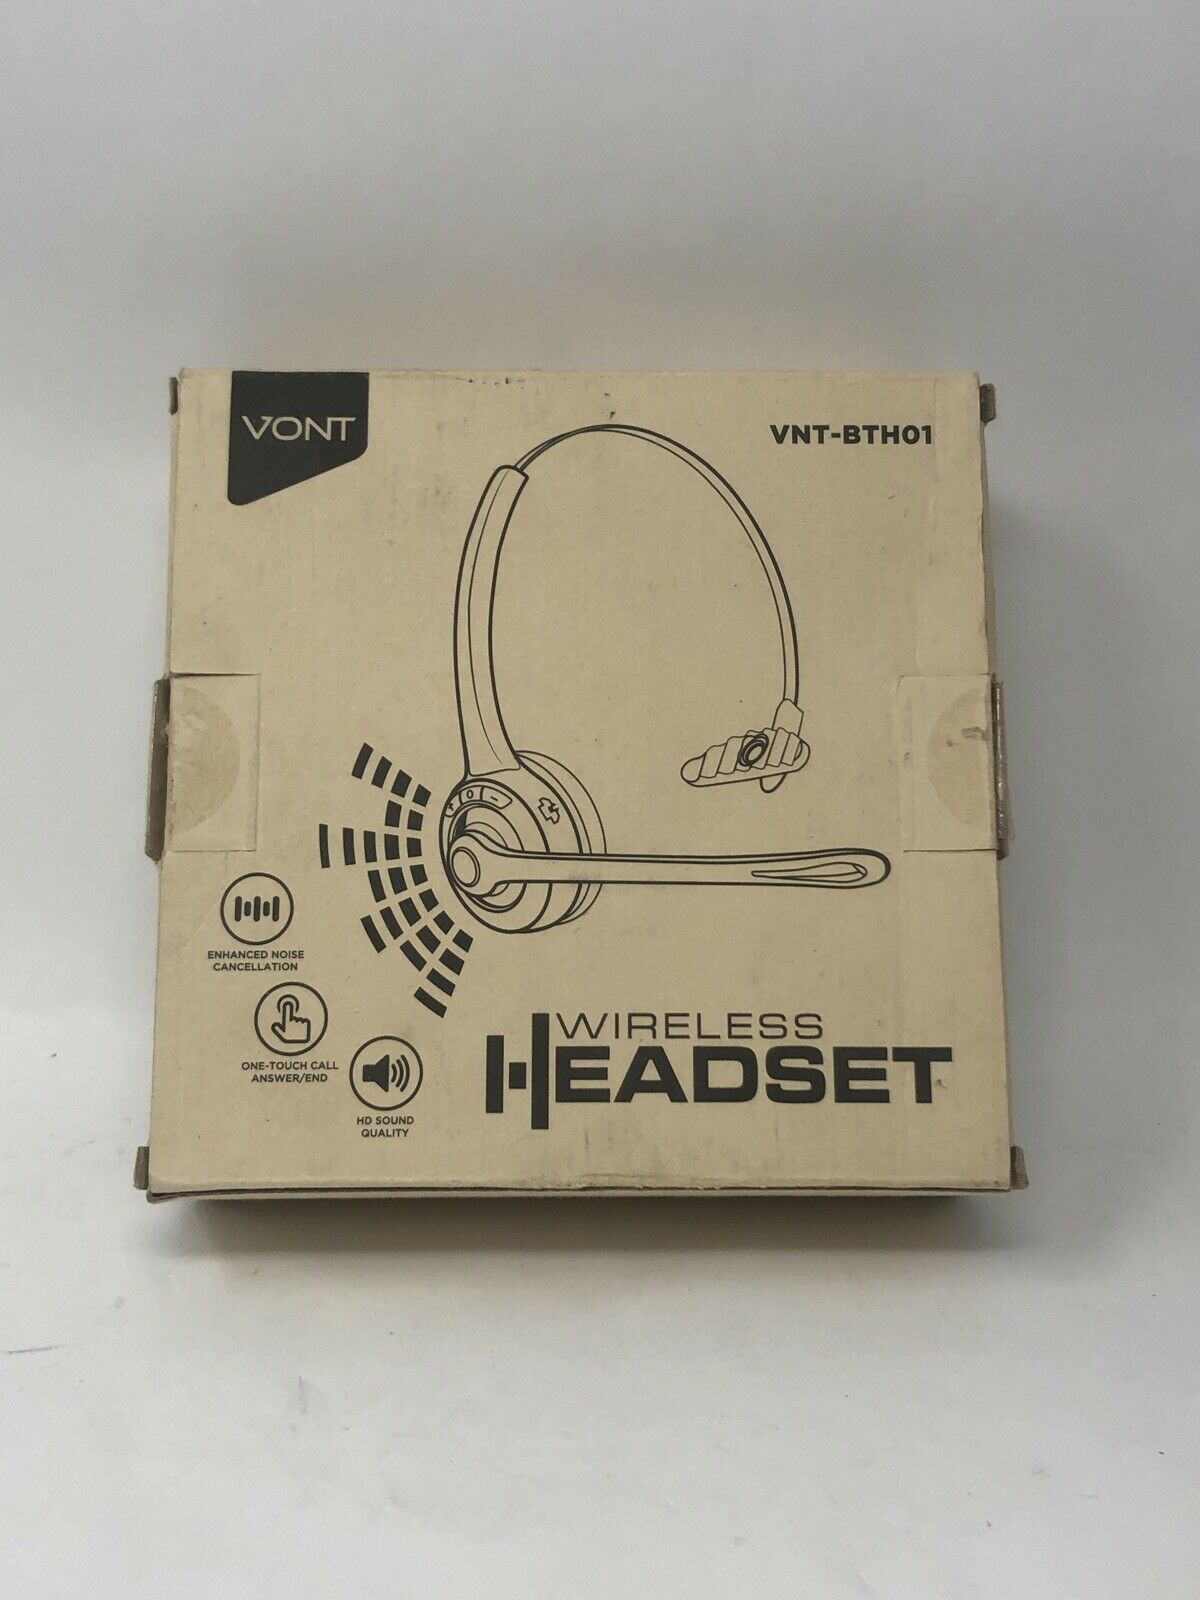 New Black Vont Bluetooth Headset Cell Phone Headset Microphone Wireless Trucker For Sale Online